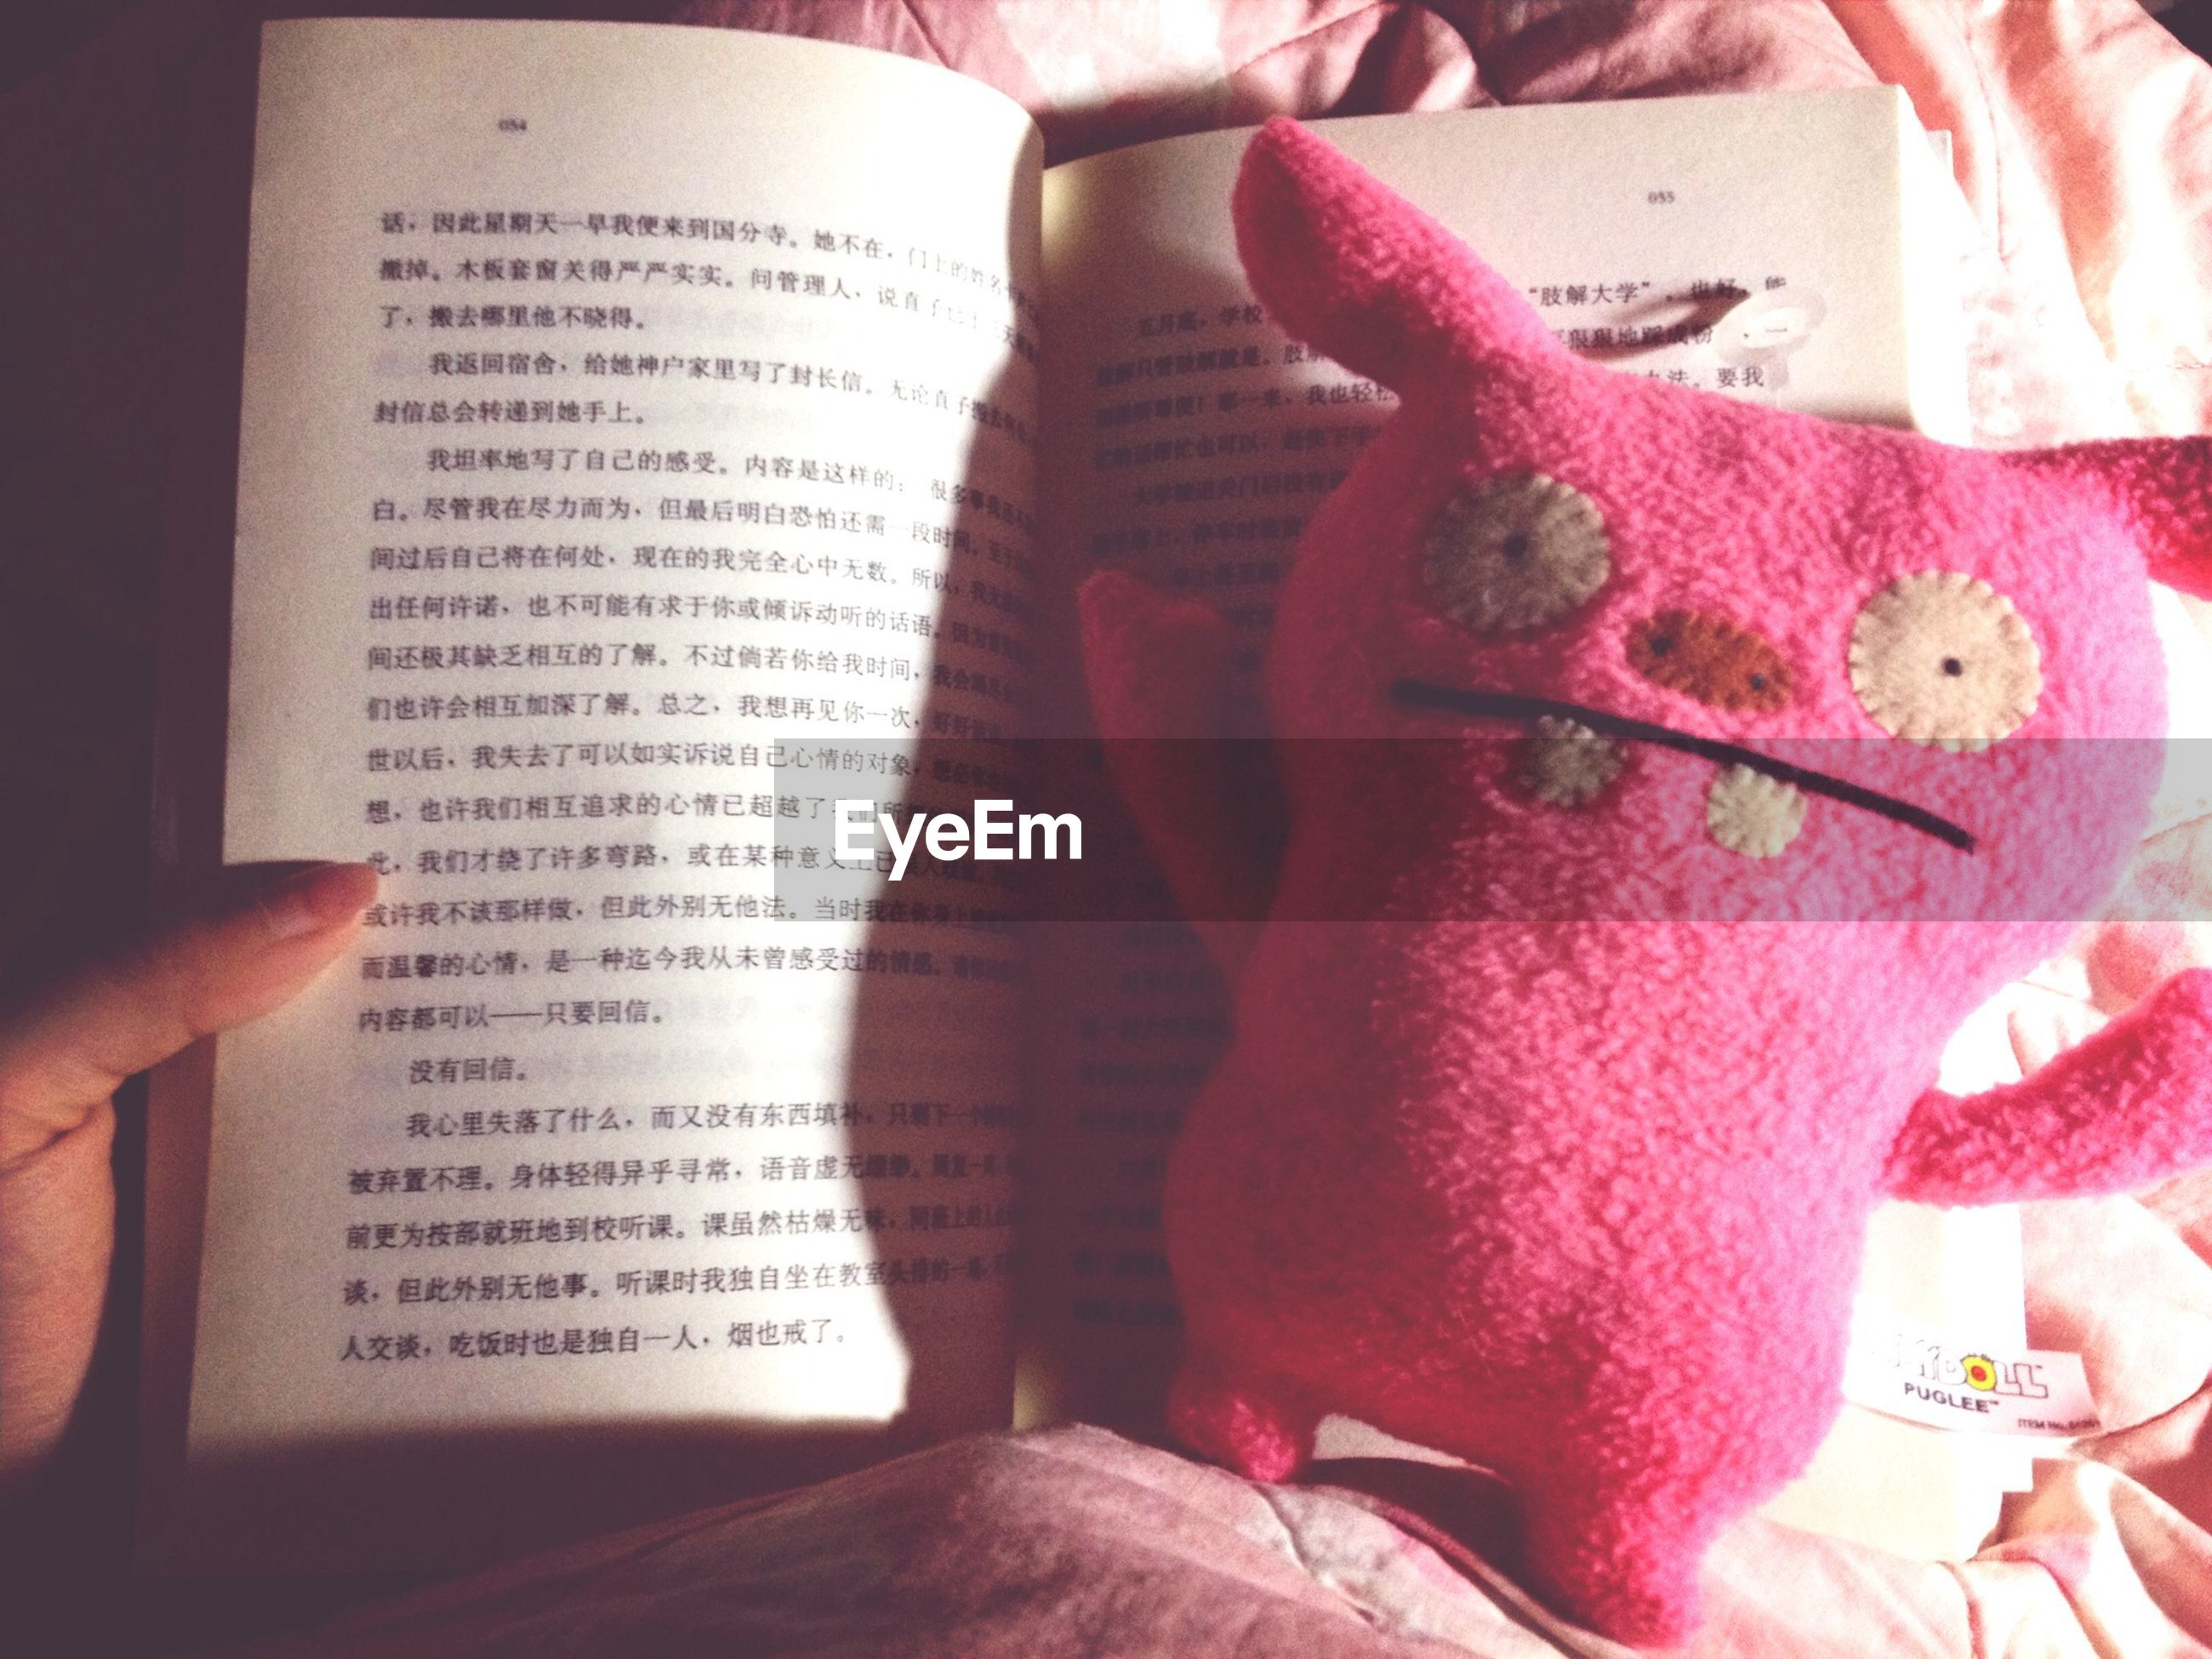 indoors, person, text, close-up, book, communication, western script, part of, one person, high angle view, paper, holding, human finger, still life, table, art and craft, cropped, art, creativity